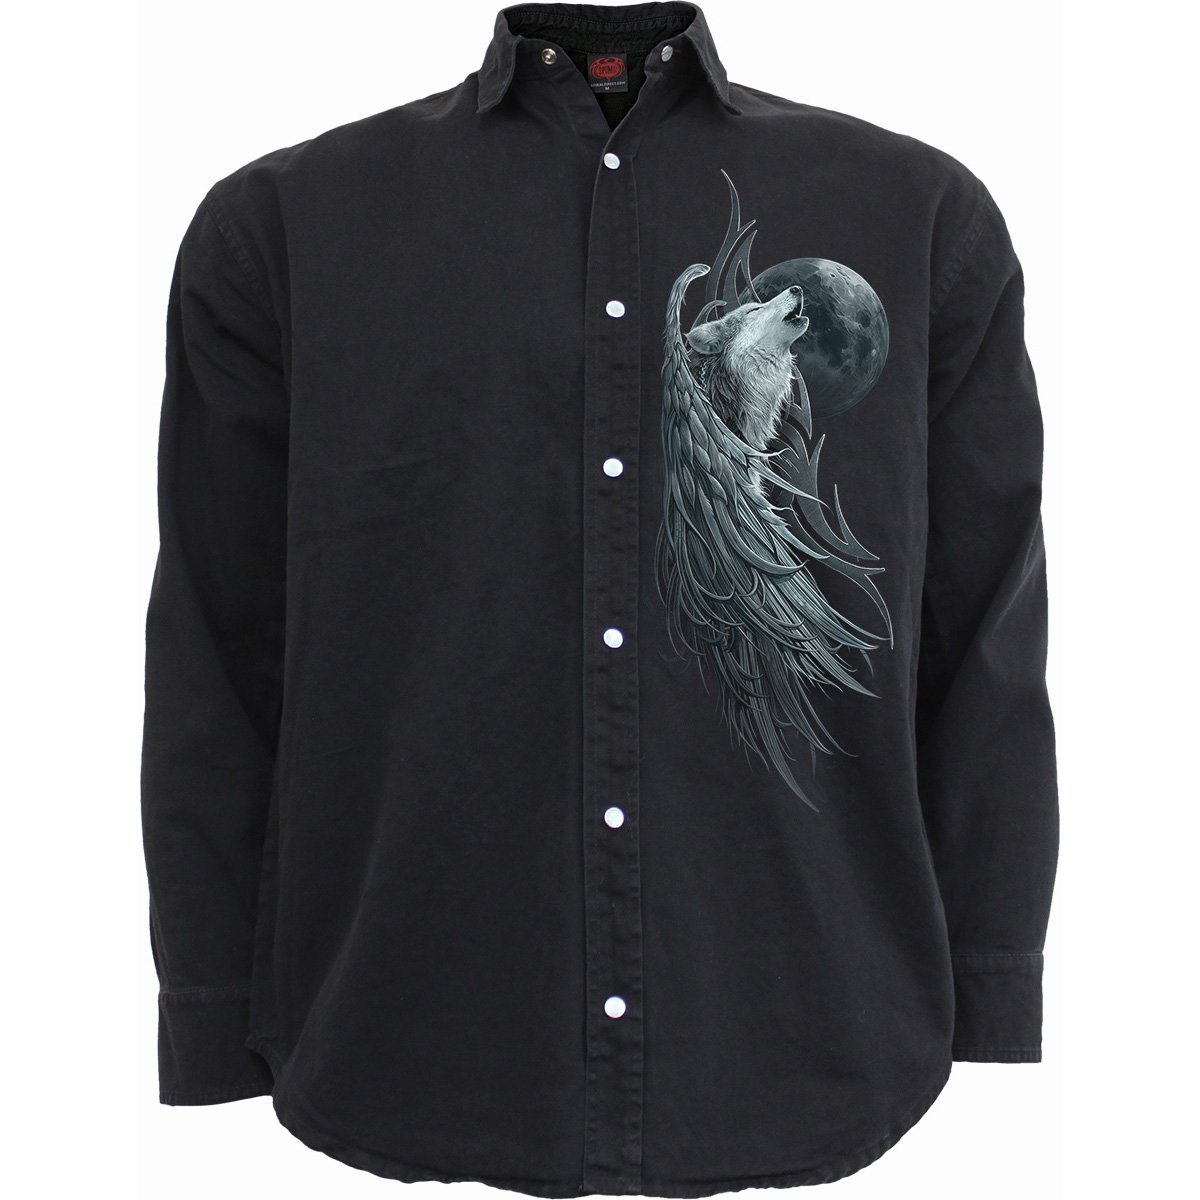 Howling Wolf Spirit Men's Black Longsleeve Button Up Shirt